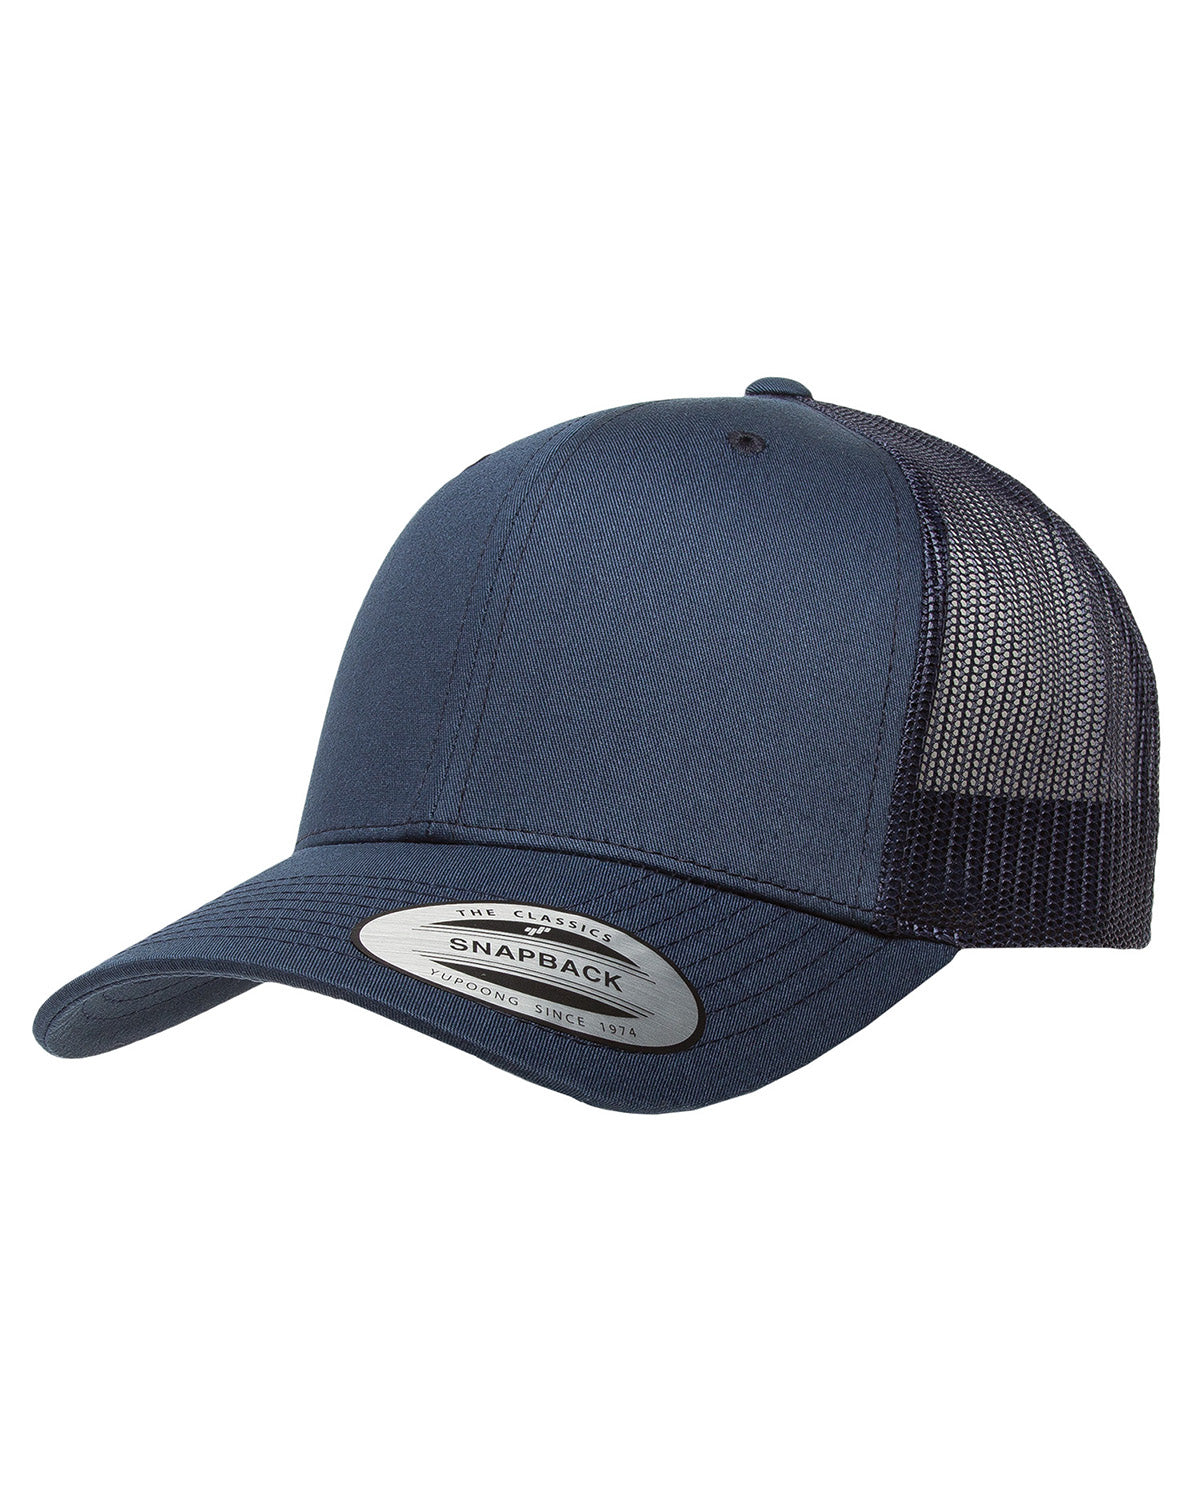 8264eb52934 Yupoong 6606 Adult Retro Trucker Cap – Cabot Business